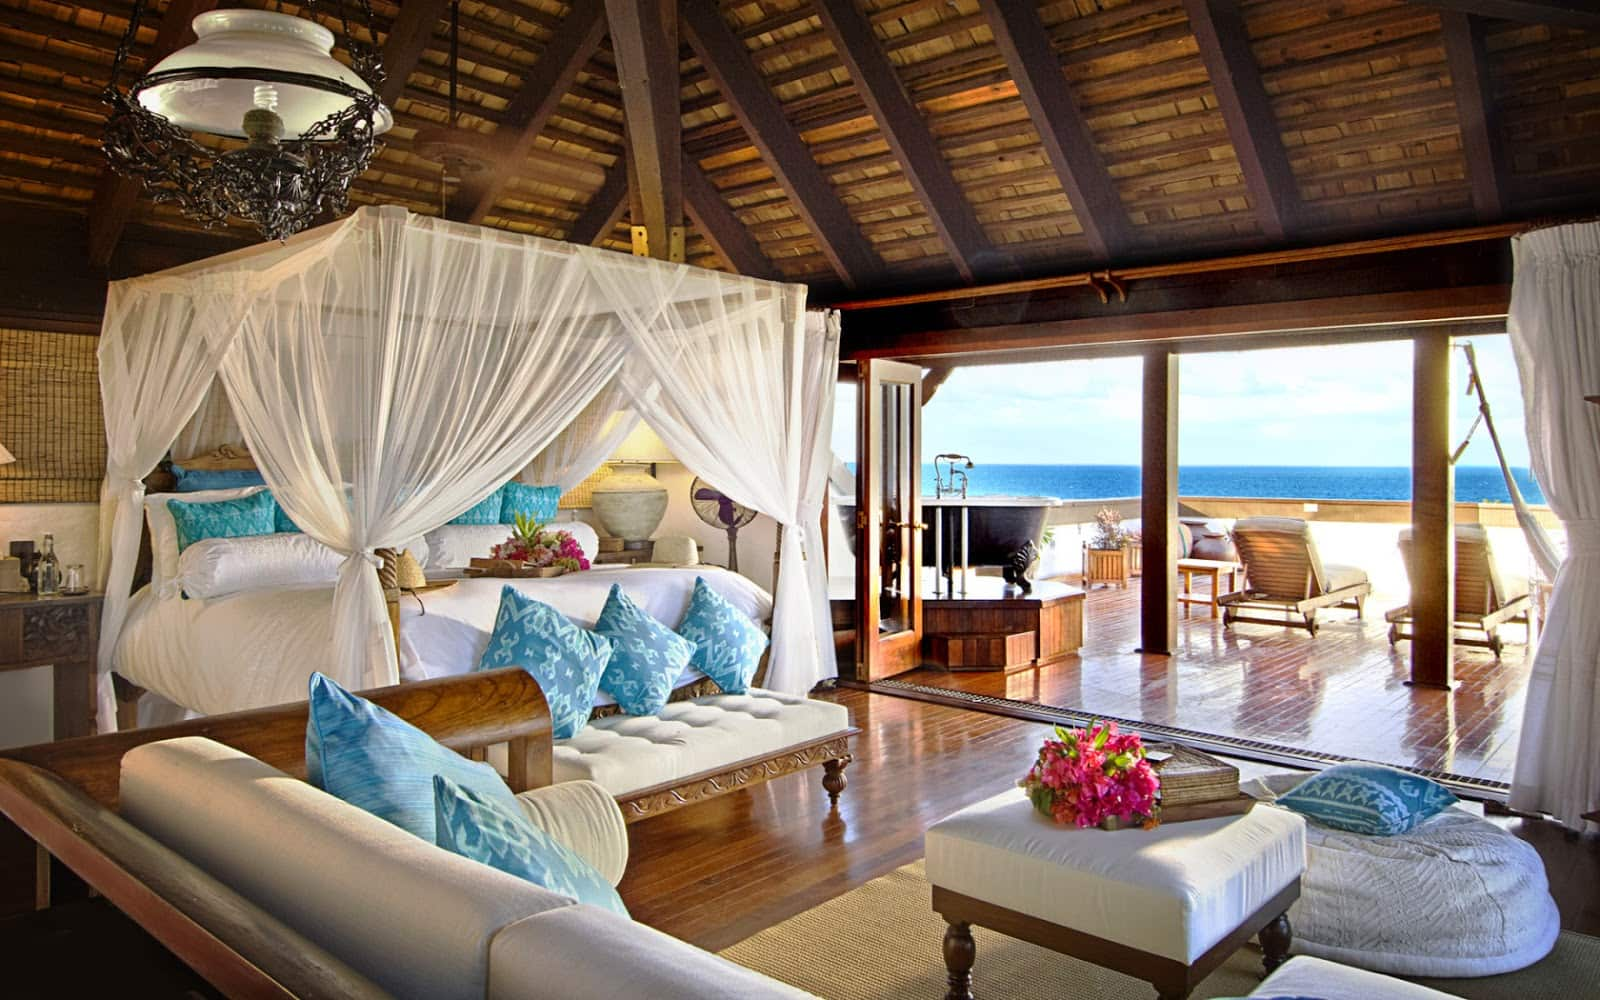 Great open space design of the oceanside bungalow with white canopy bed in the center